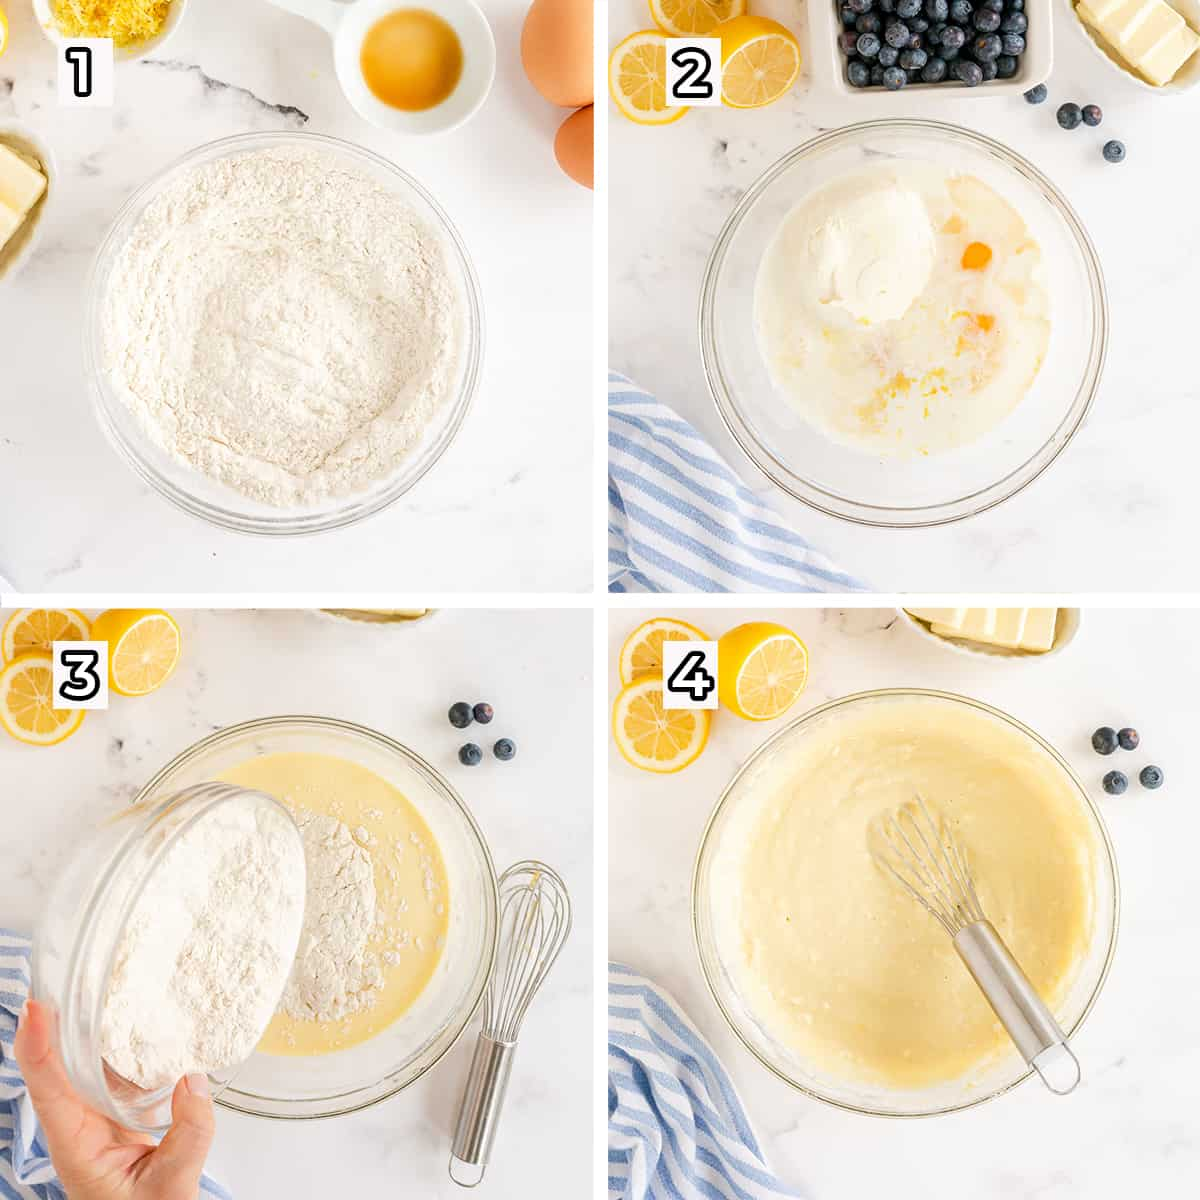 Pancake batter is whisked together in a glass mixing bowl.